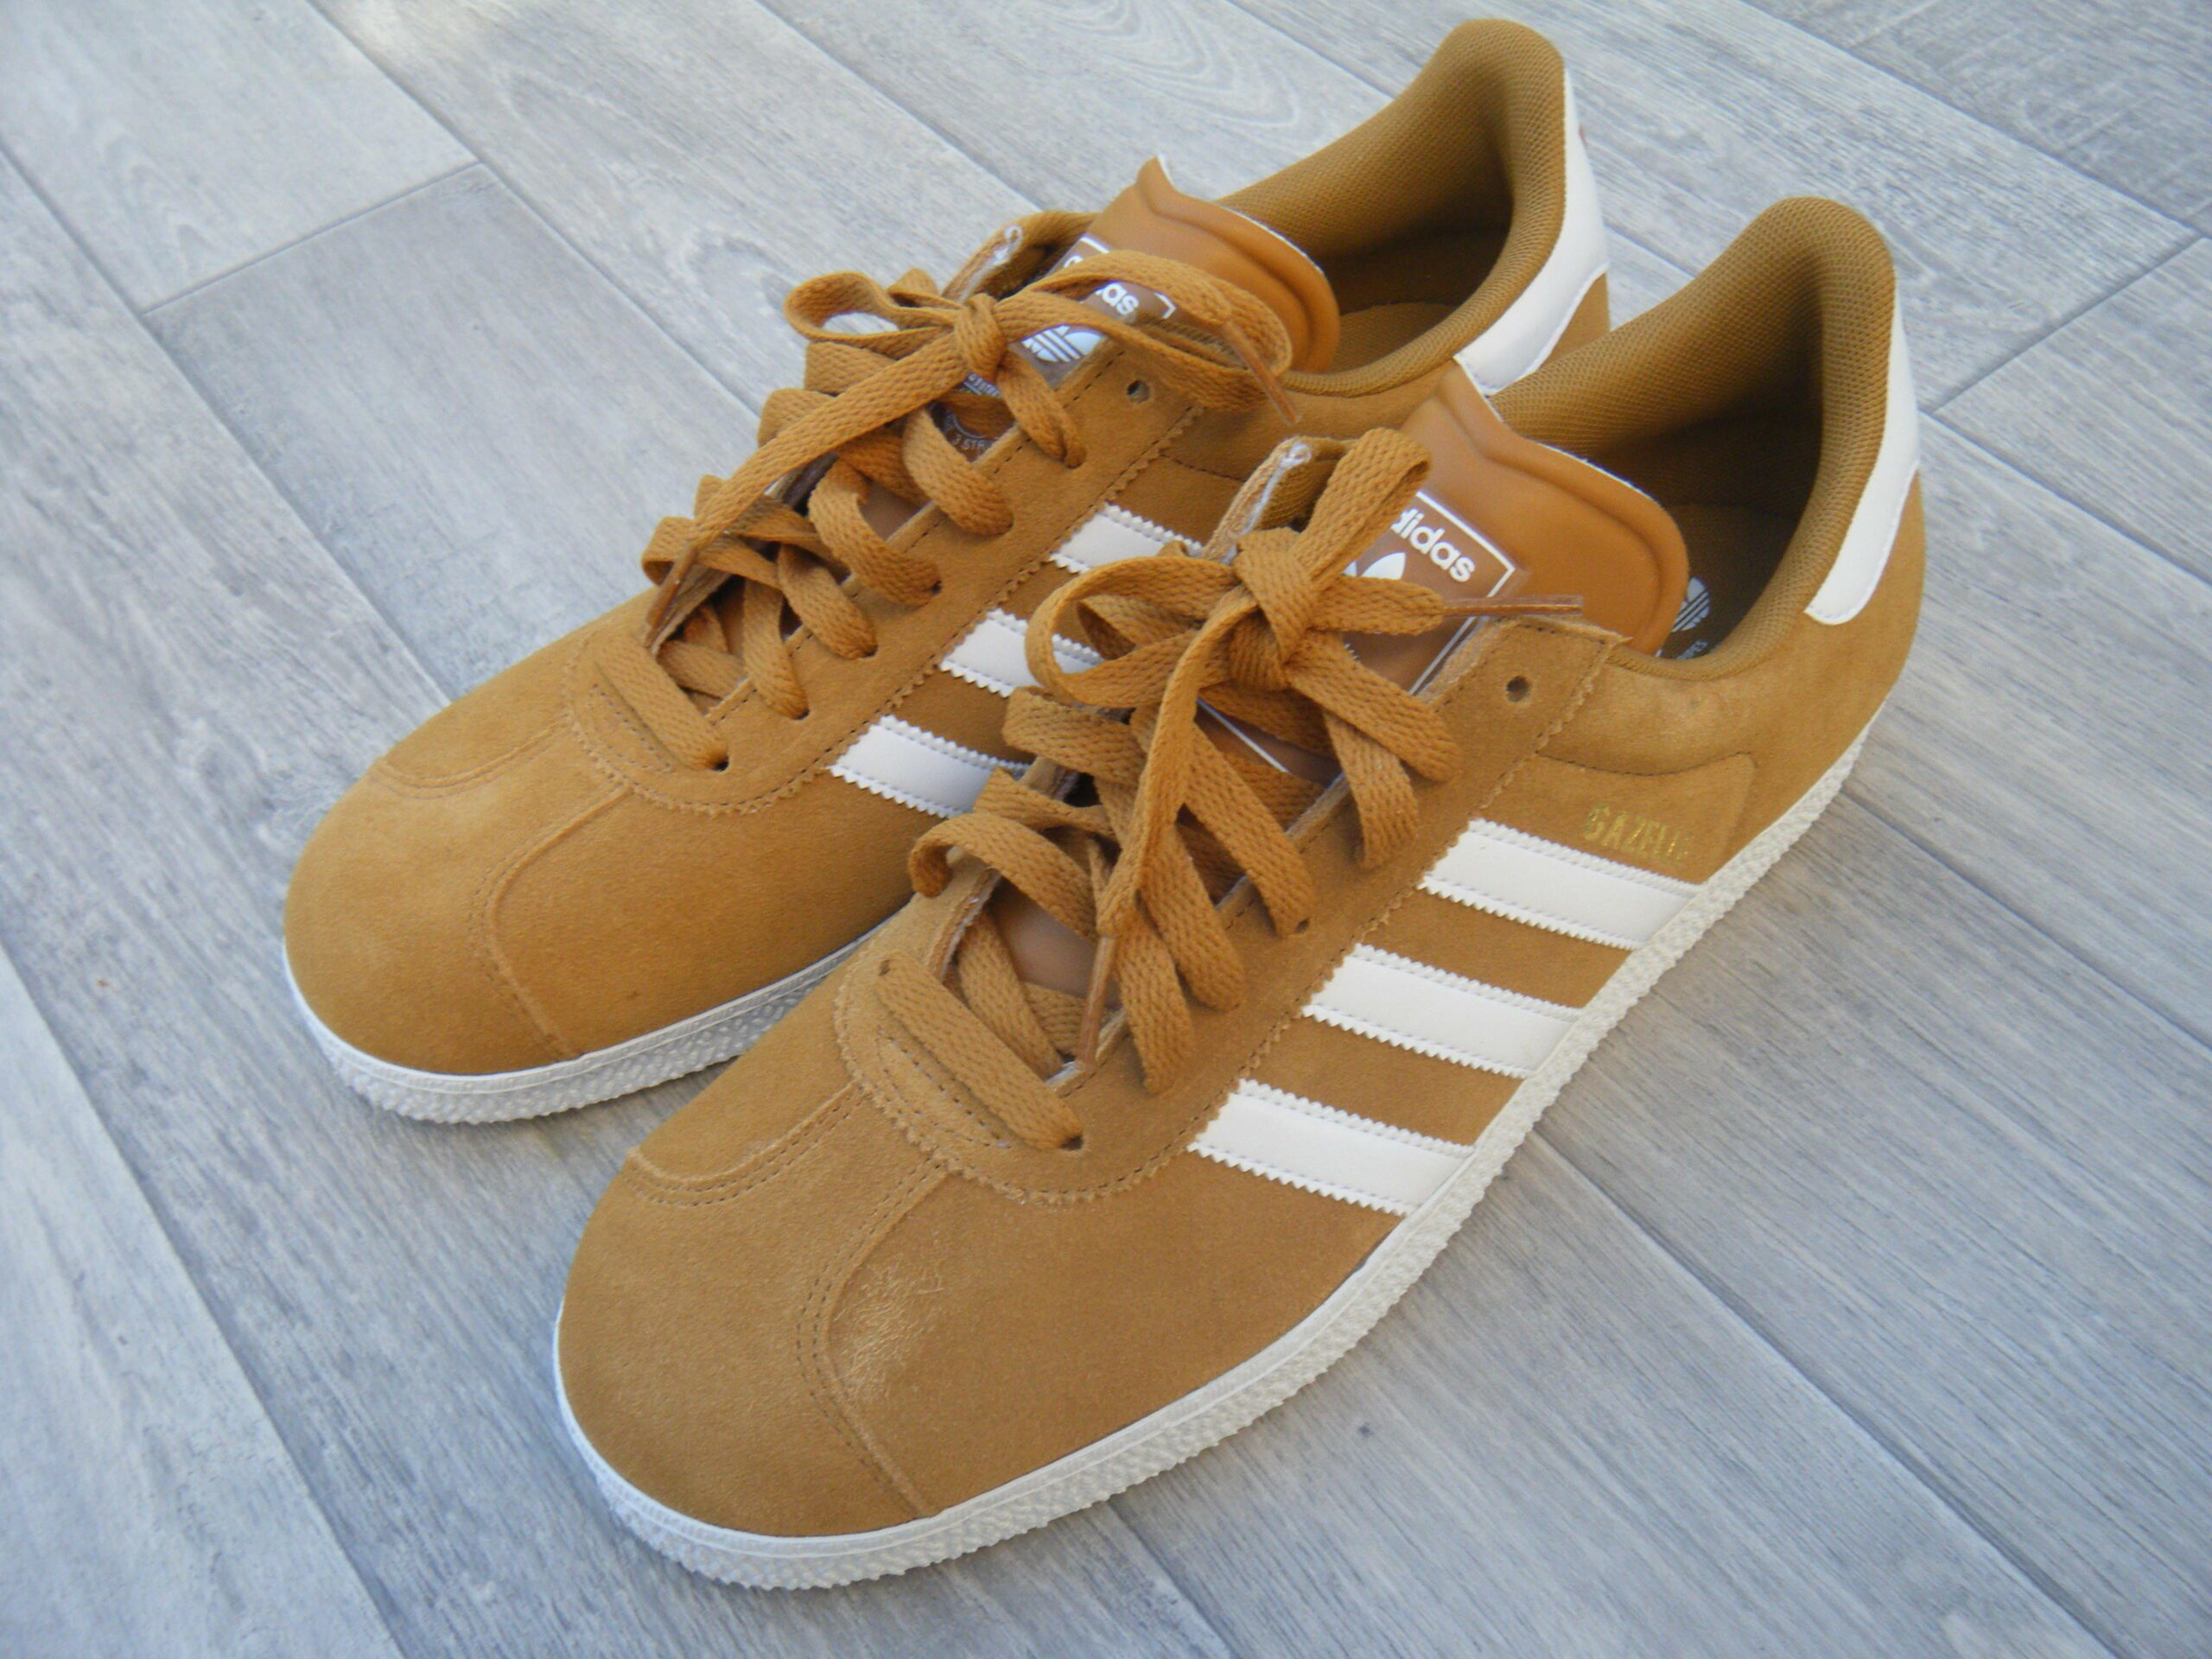 chaussure adidas hommes camel